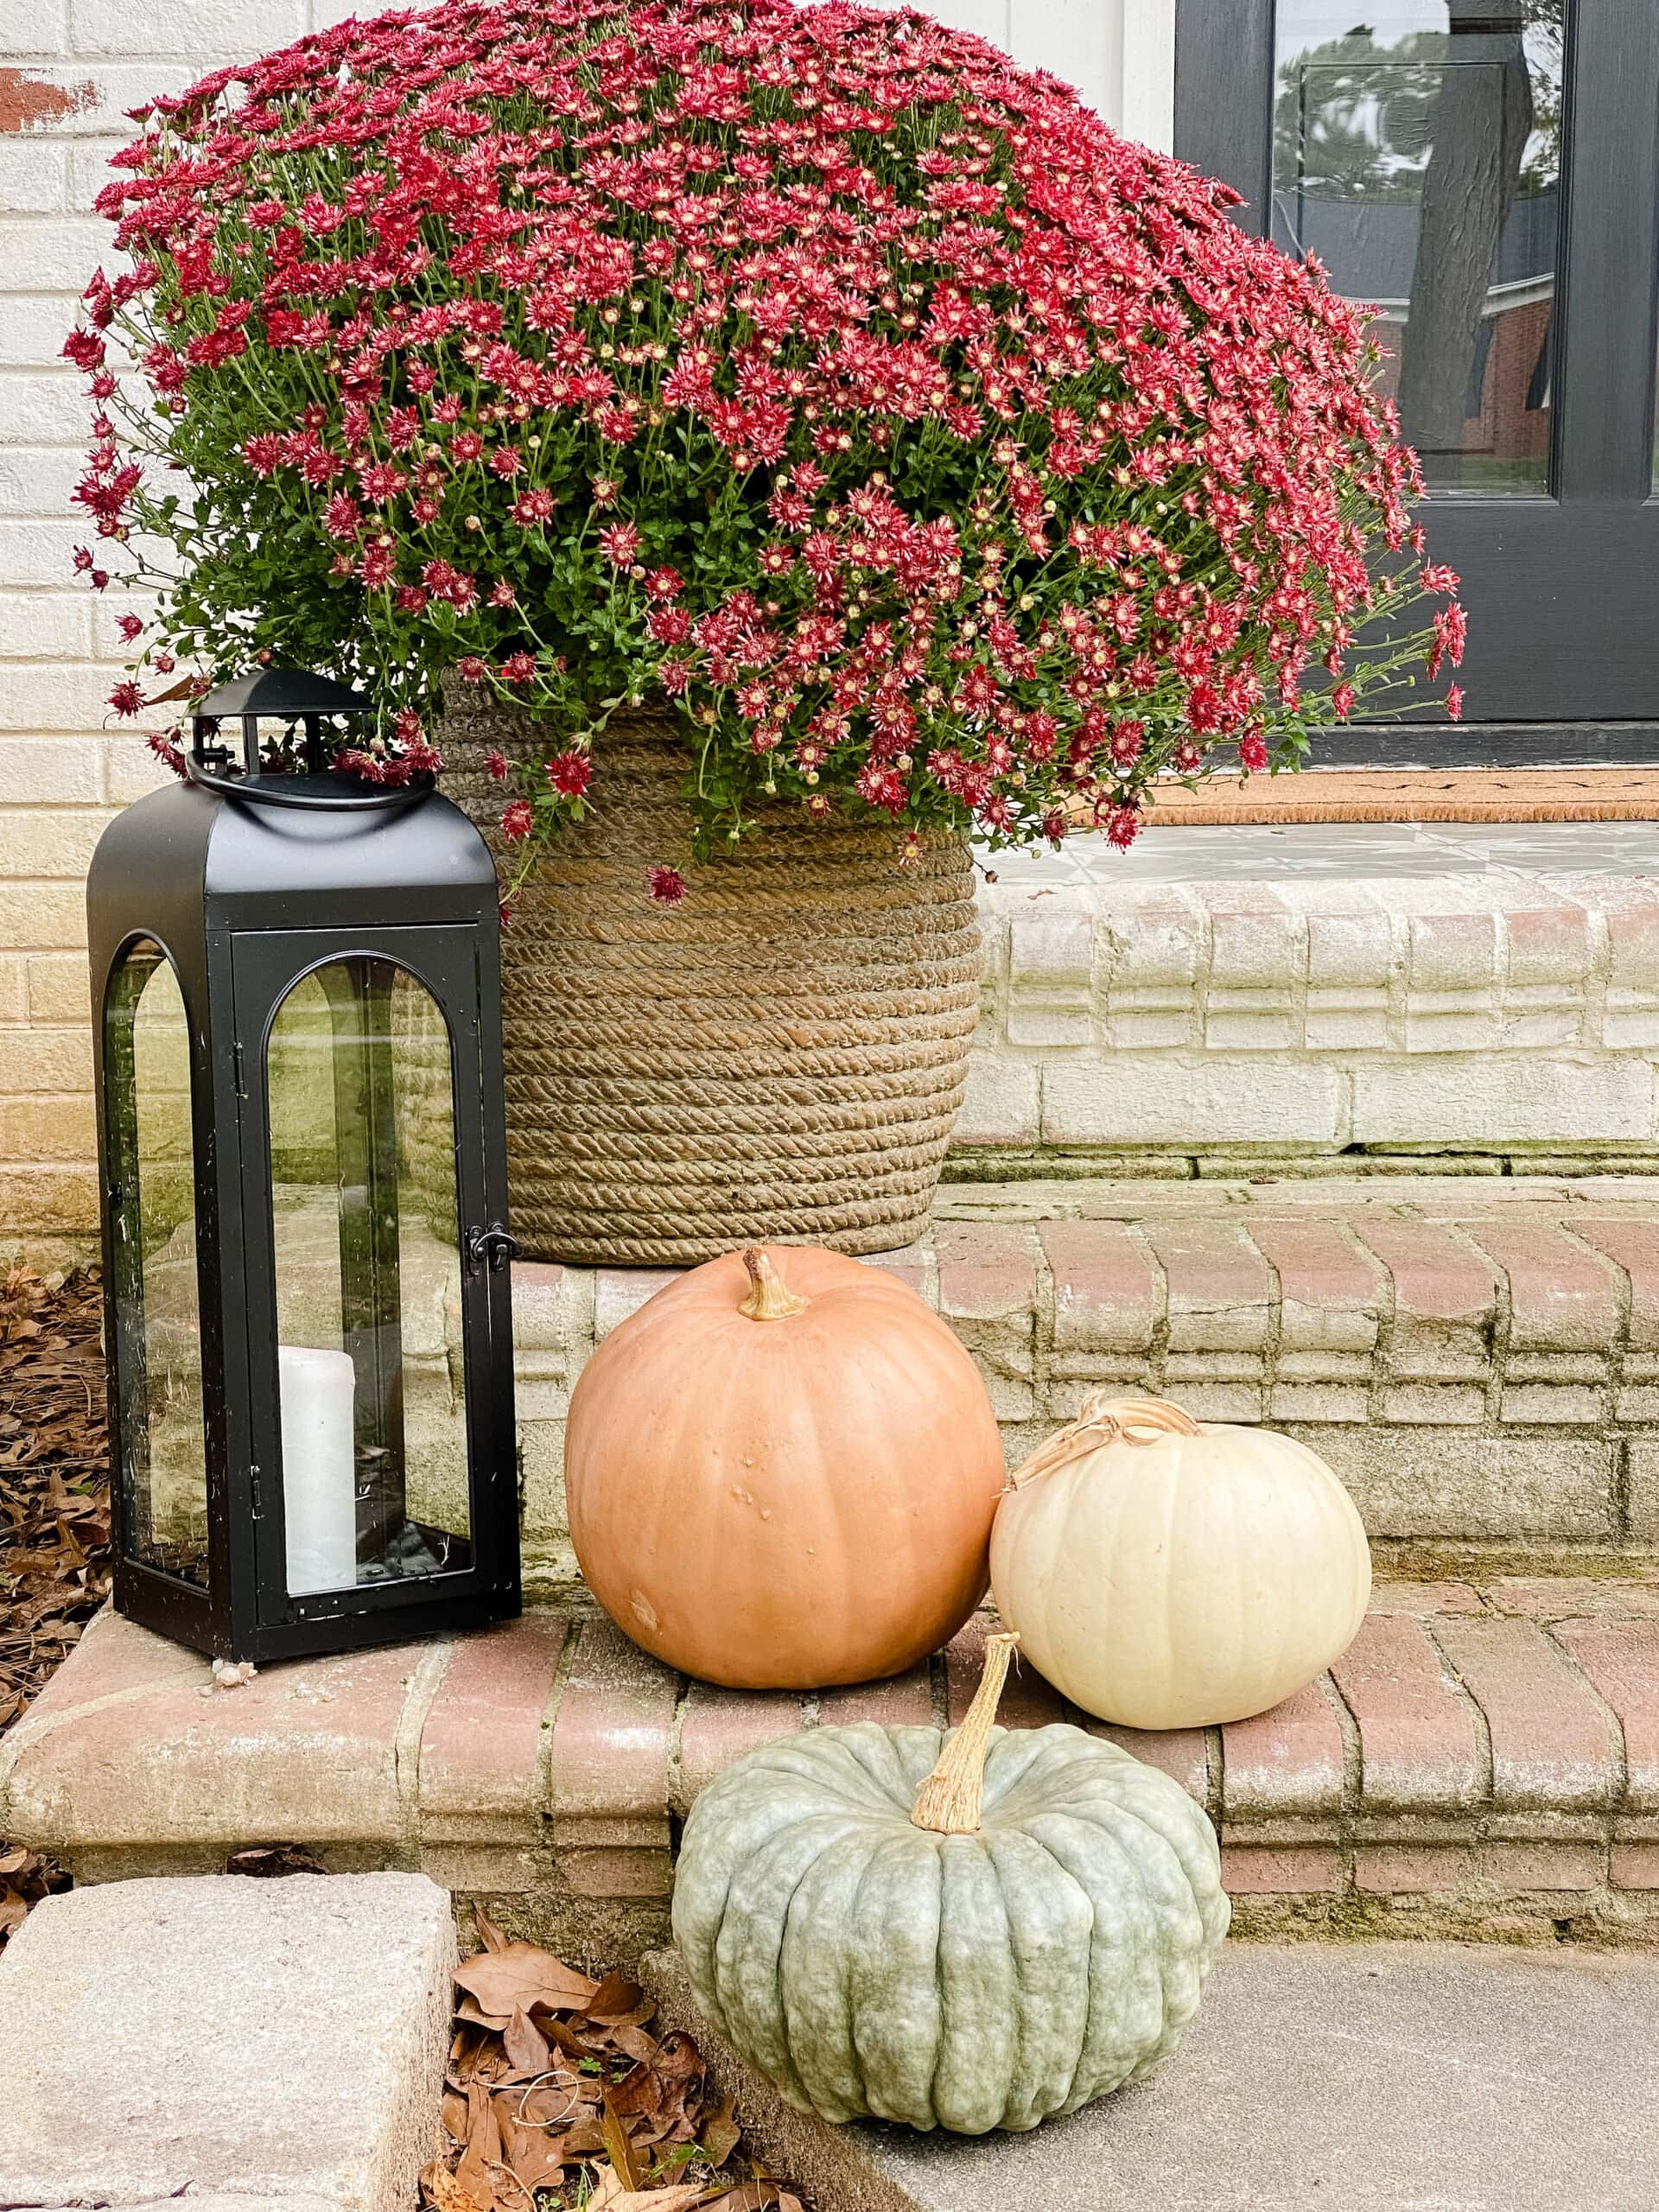 How to Keep Pumpkins from Rotting – 1 Minute Trick